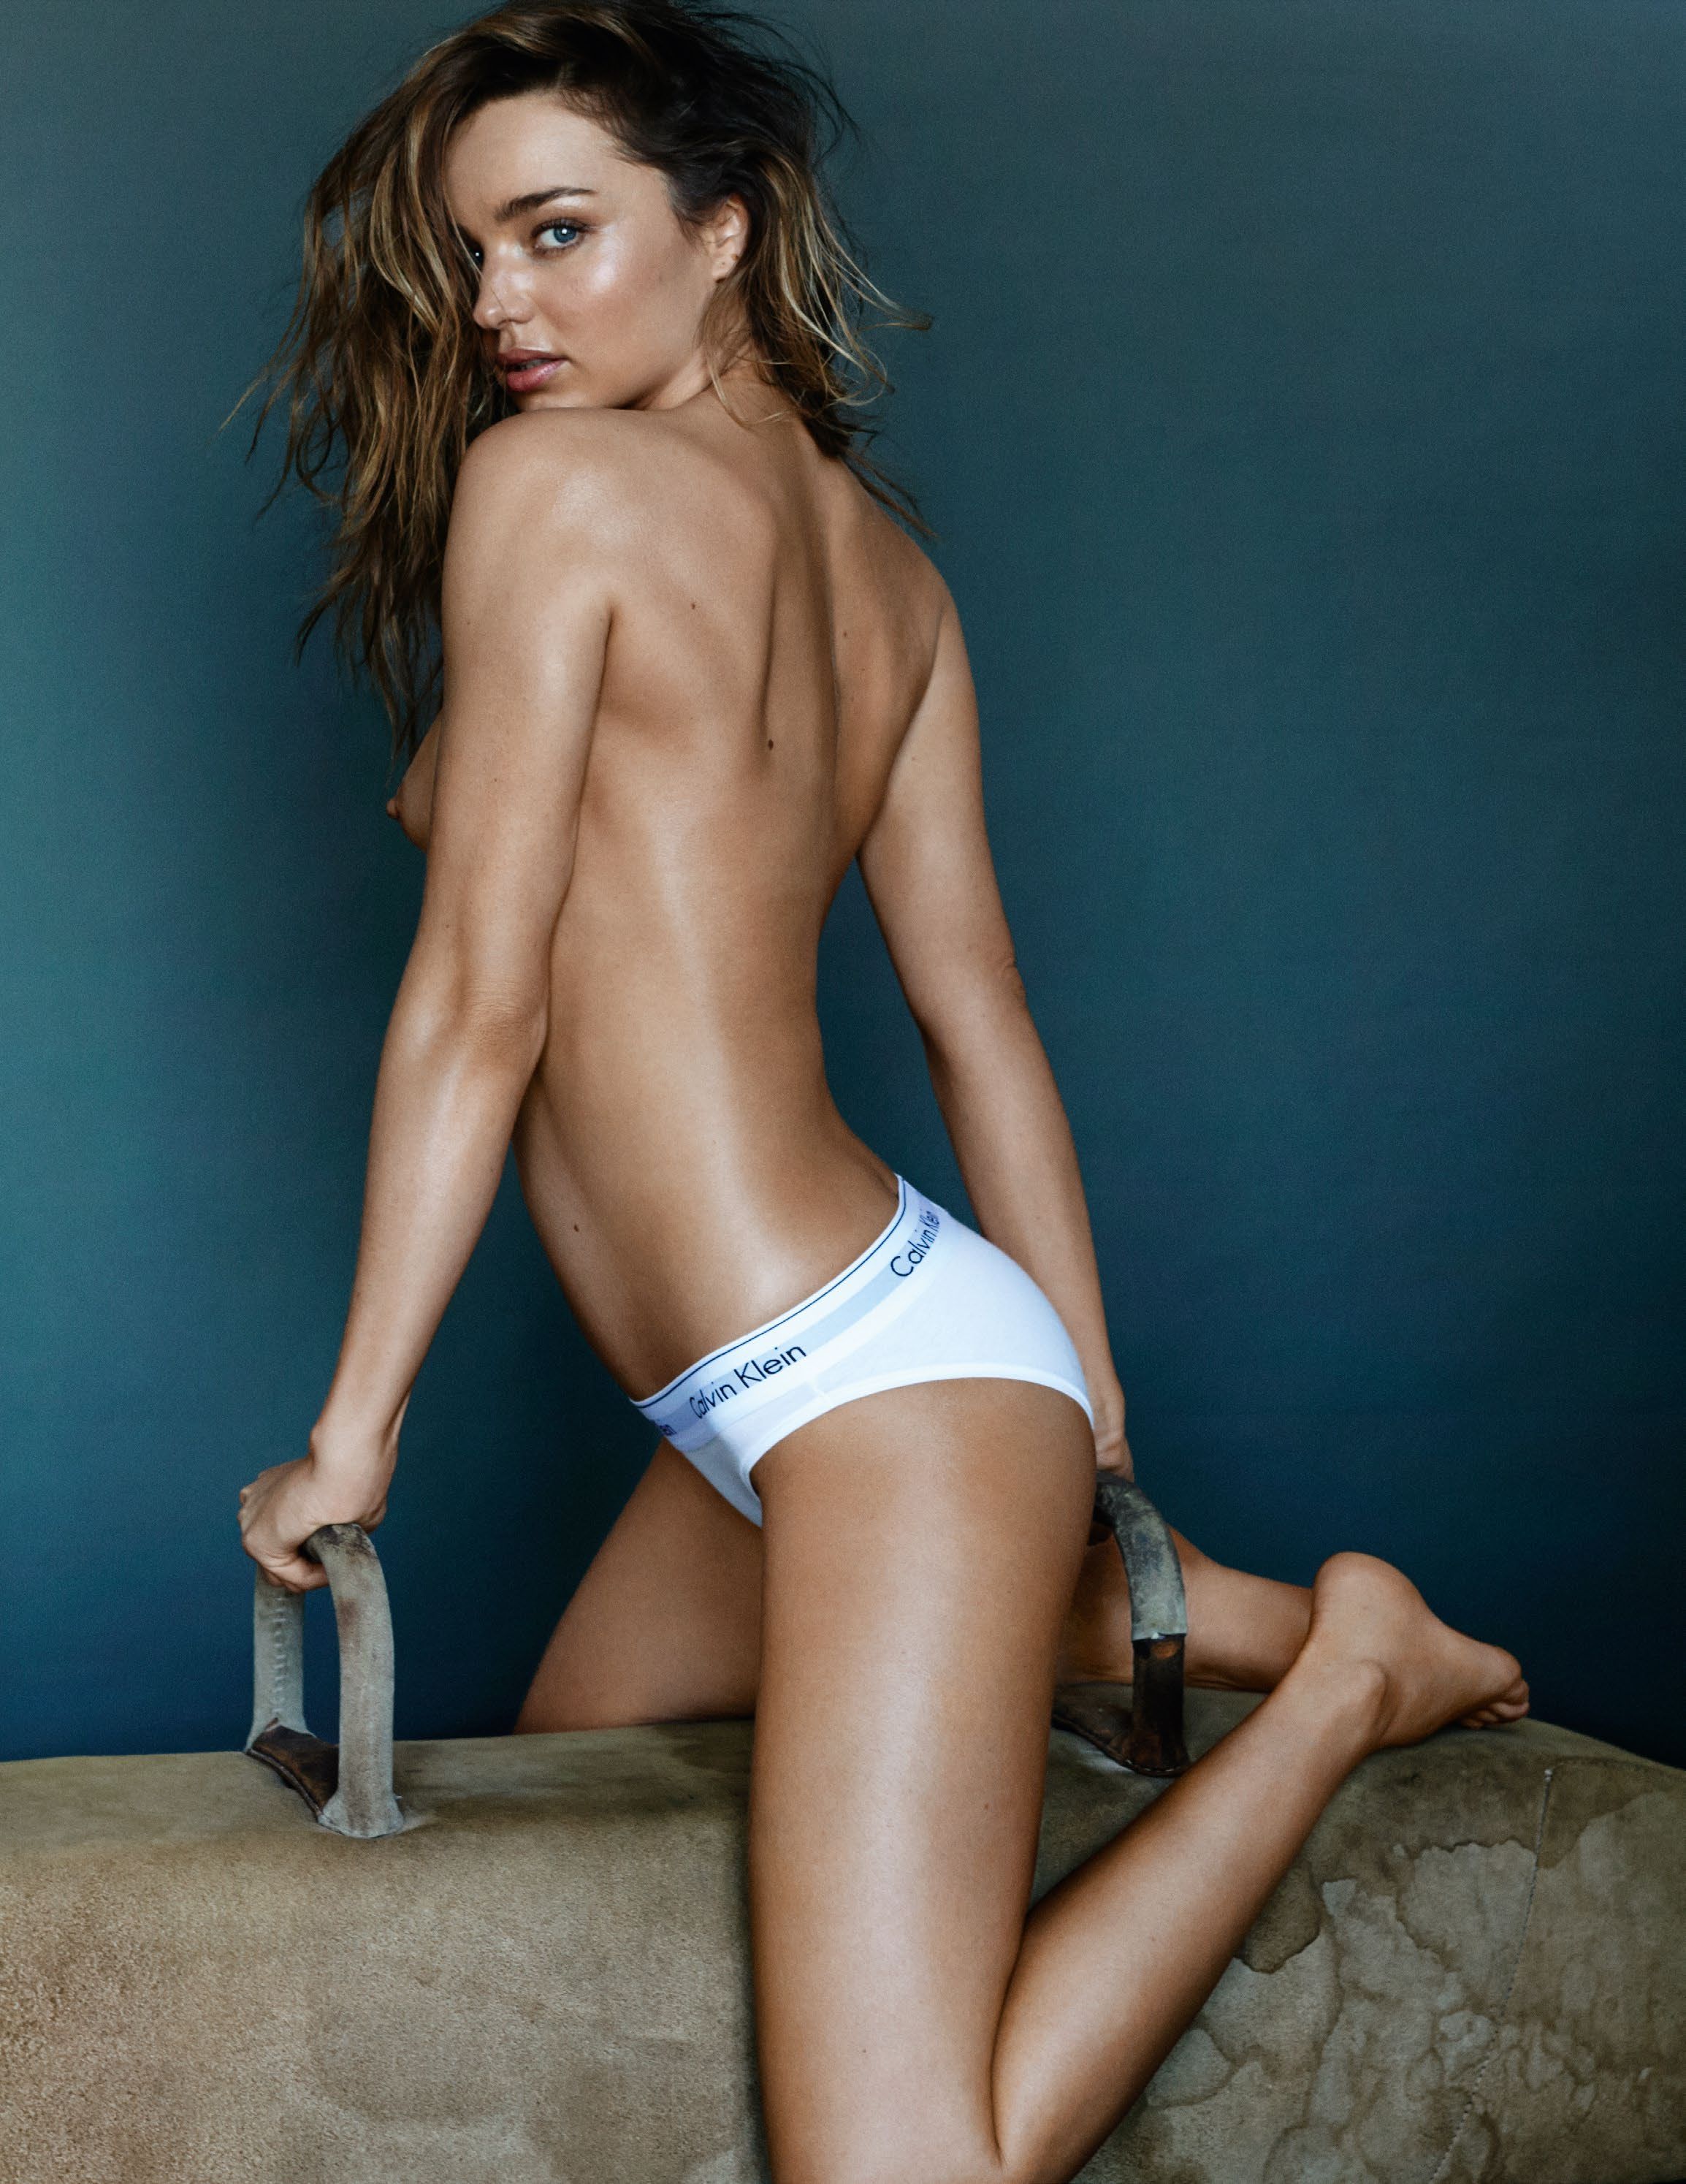 miranda-kerr-by-mario-testino-for-gq-uk-may-2014-10